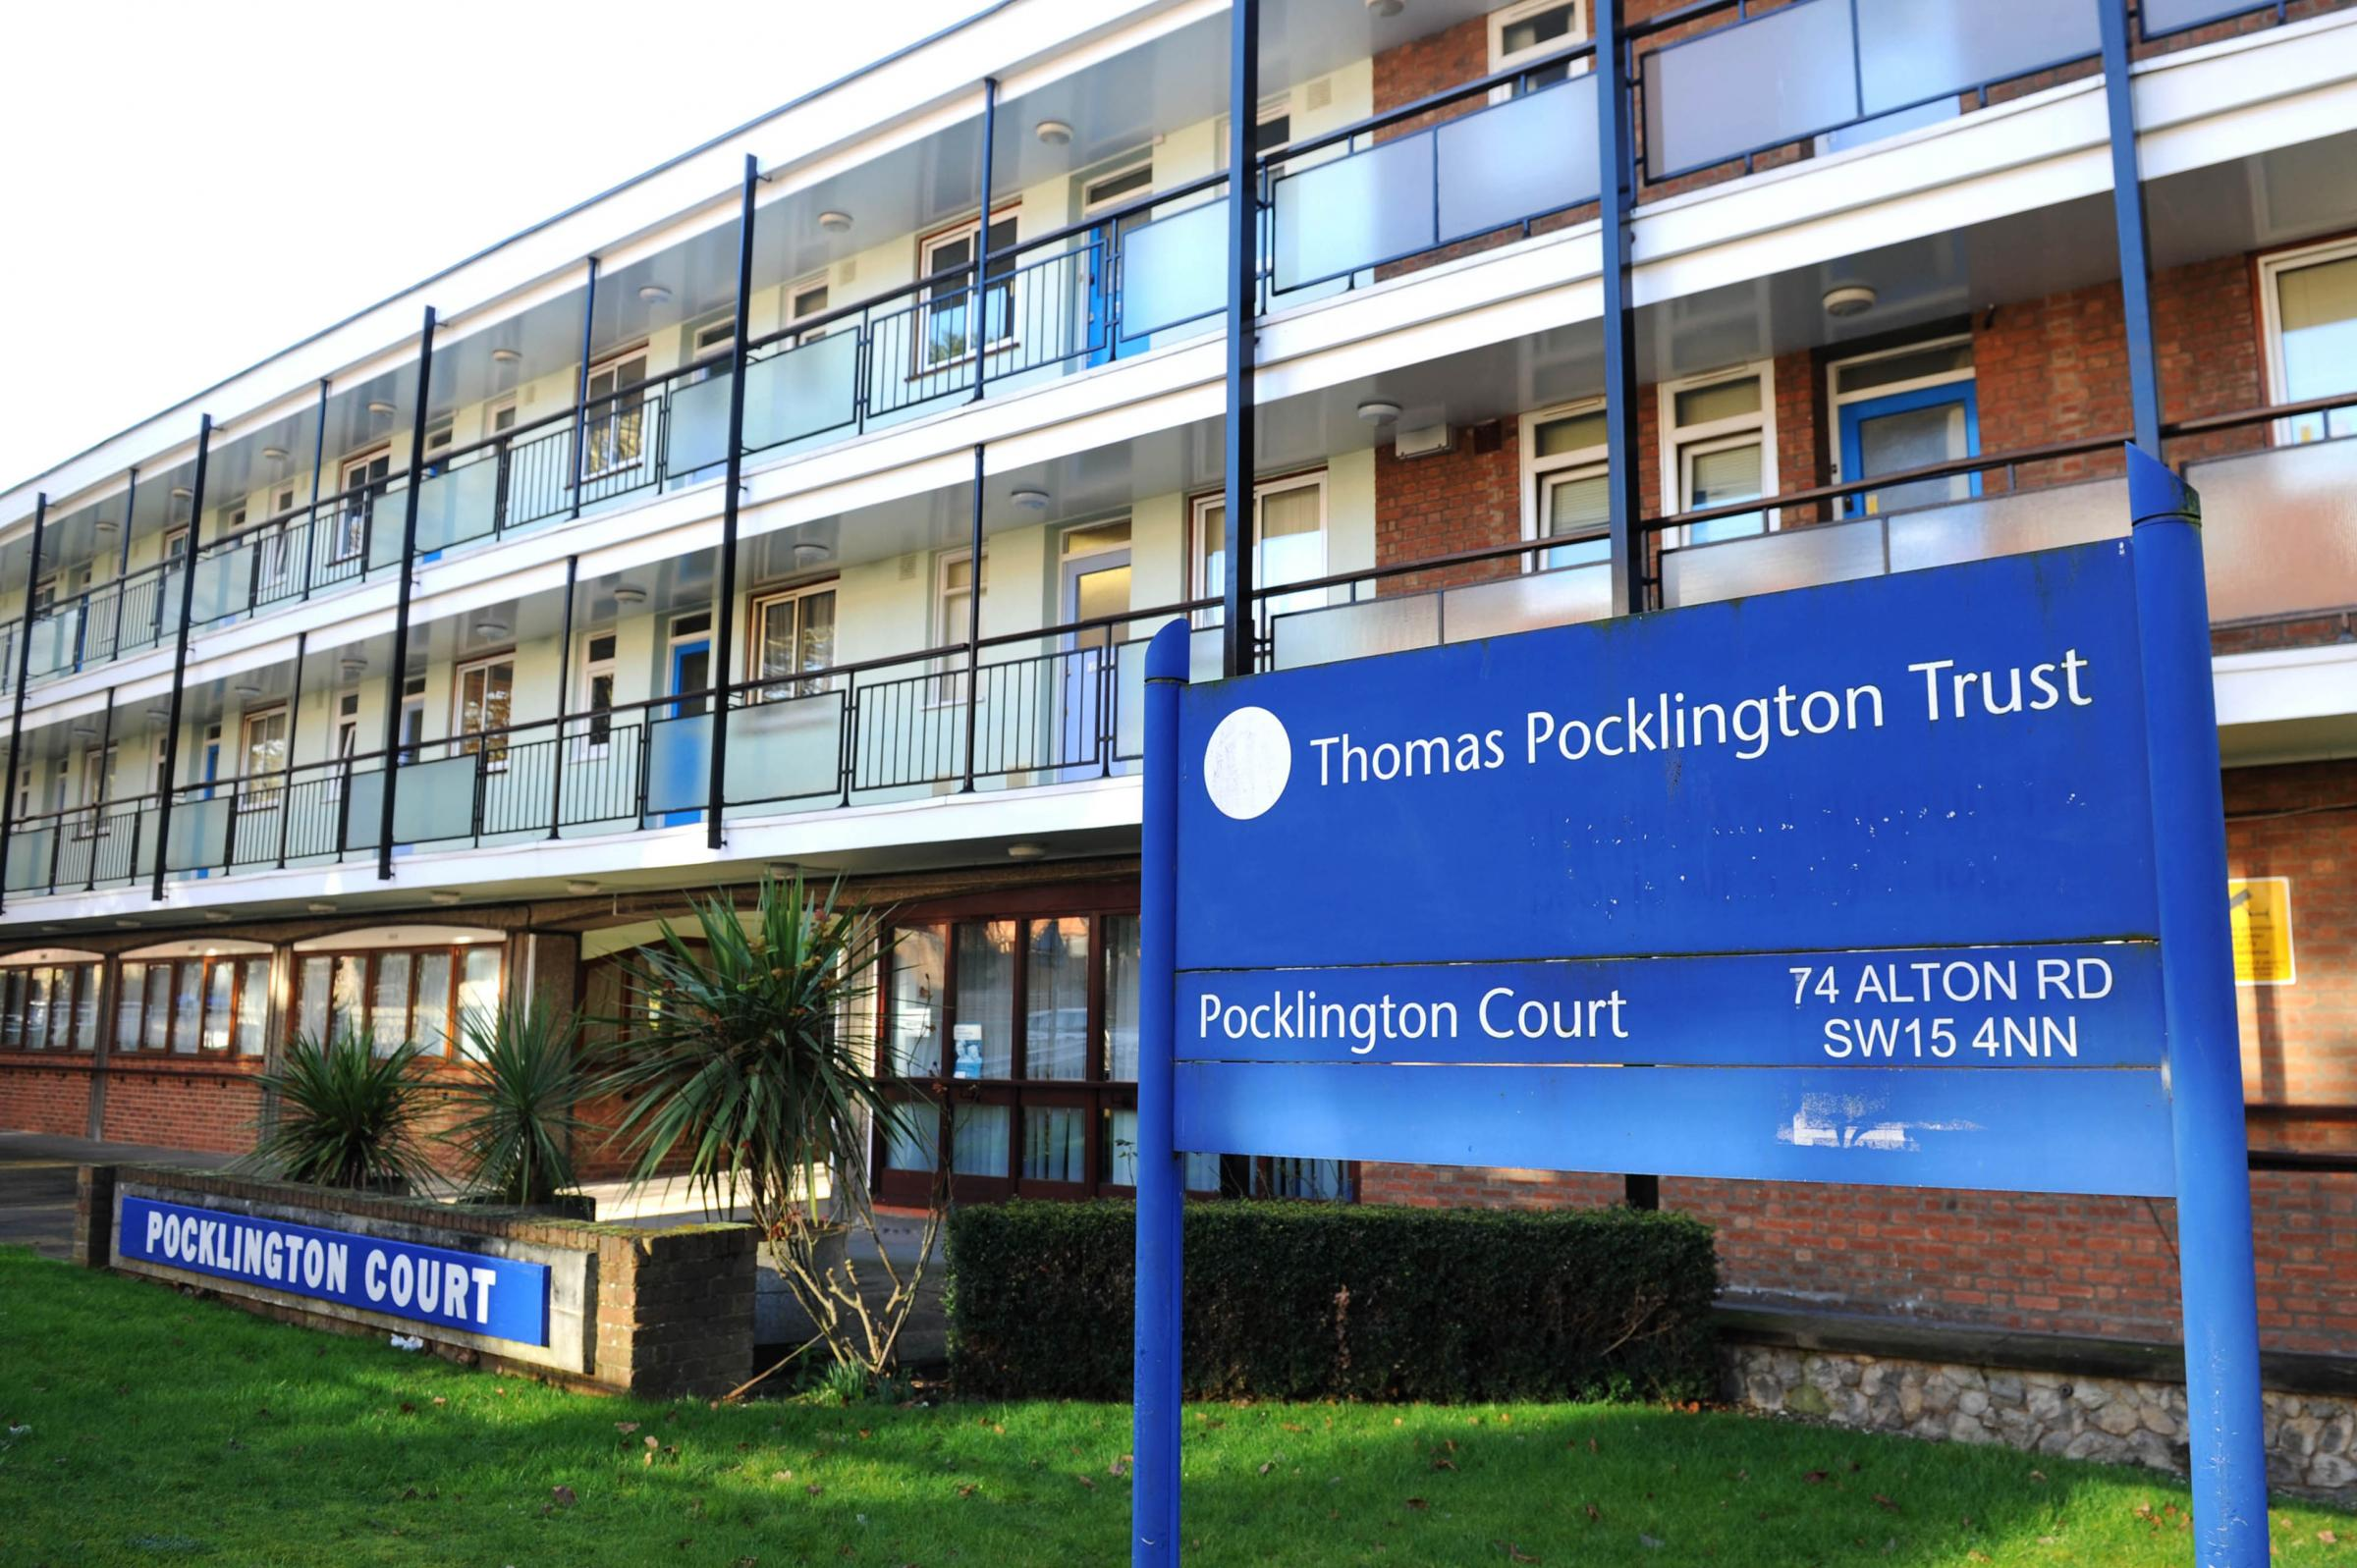 The dress exchange pocklington - Blind Residents To Be Kicked Out Of Pocklington Court After Charity Announces Closure From Wandsworth Guardian